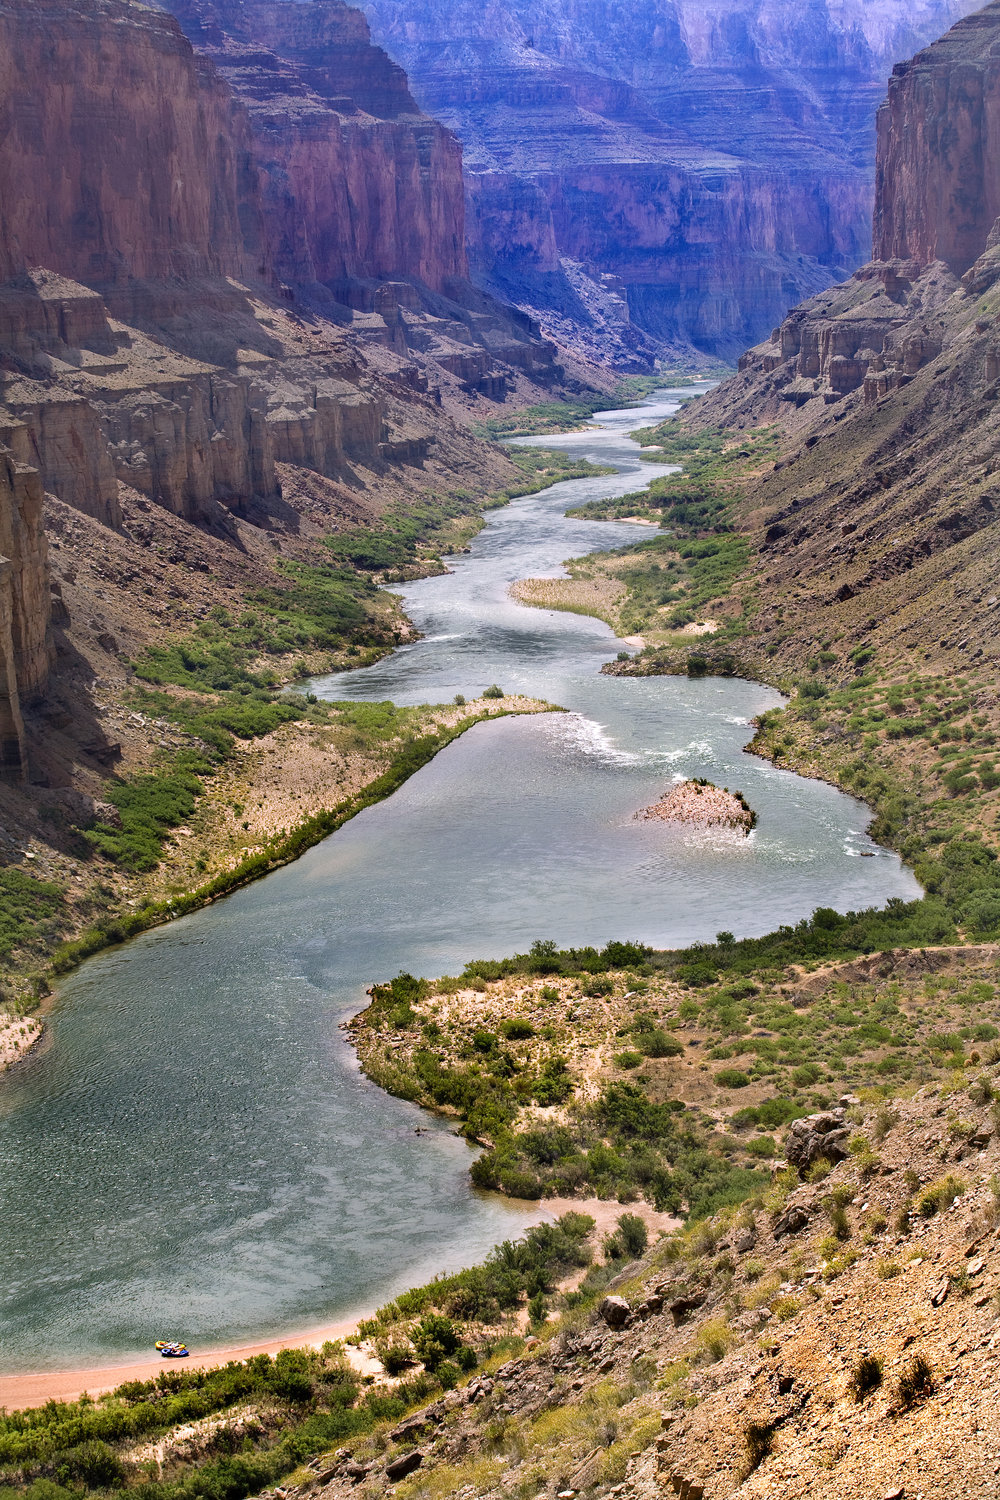 HighGrandCanyonView.jpg